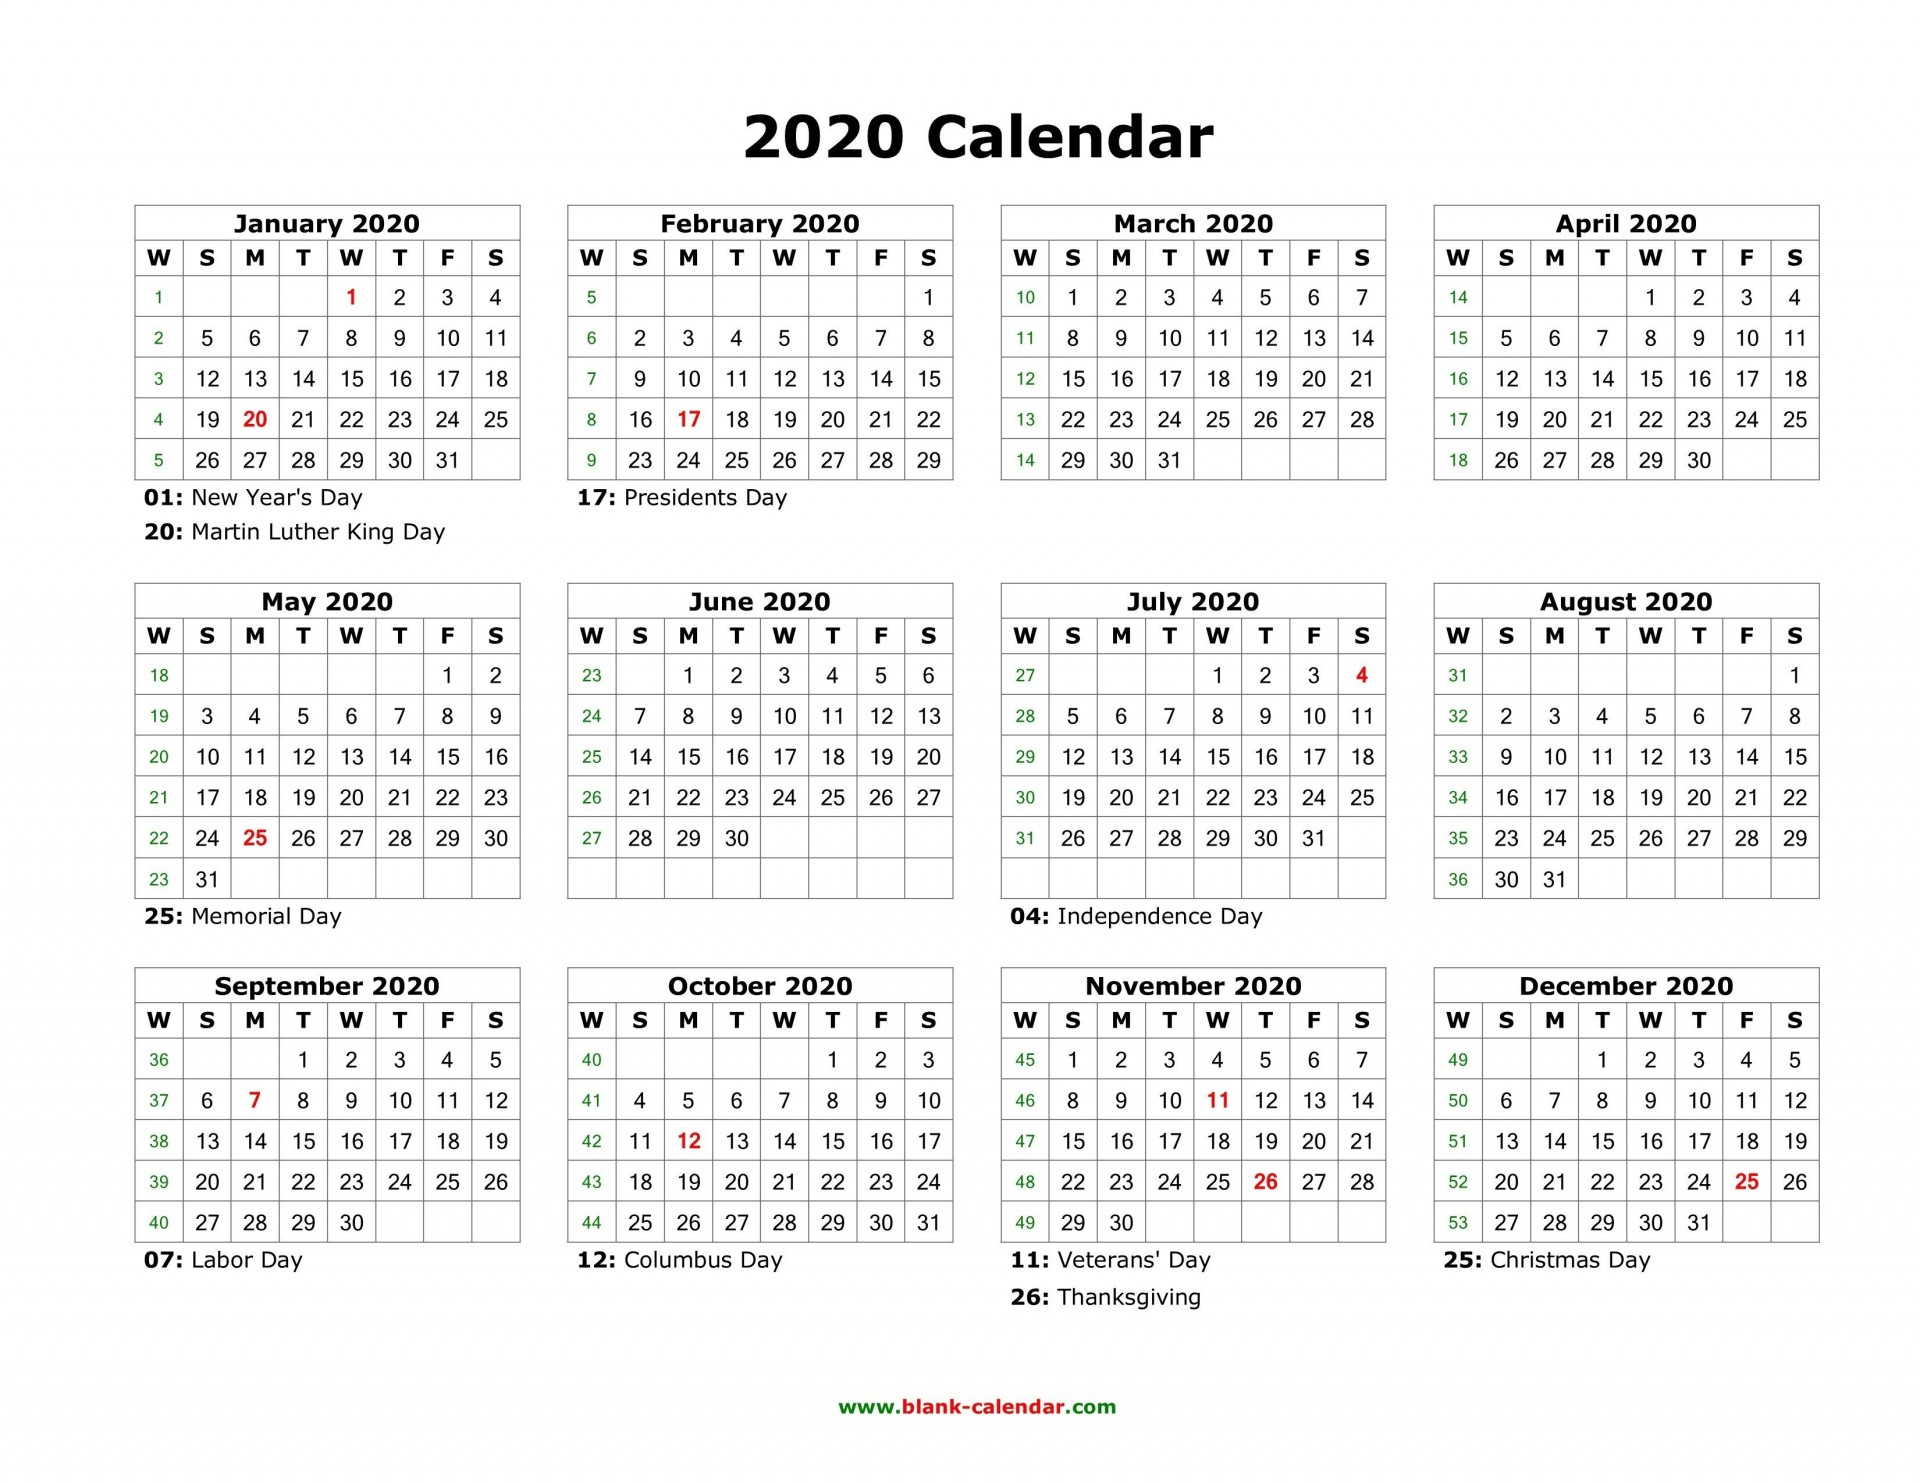 003 Stunning 2020 Blank Calendar Template Image  Printable Monthly Word Downloadable With Holiday1920